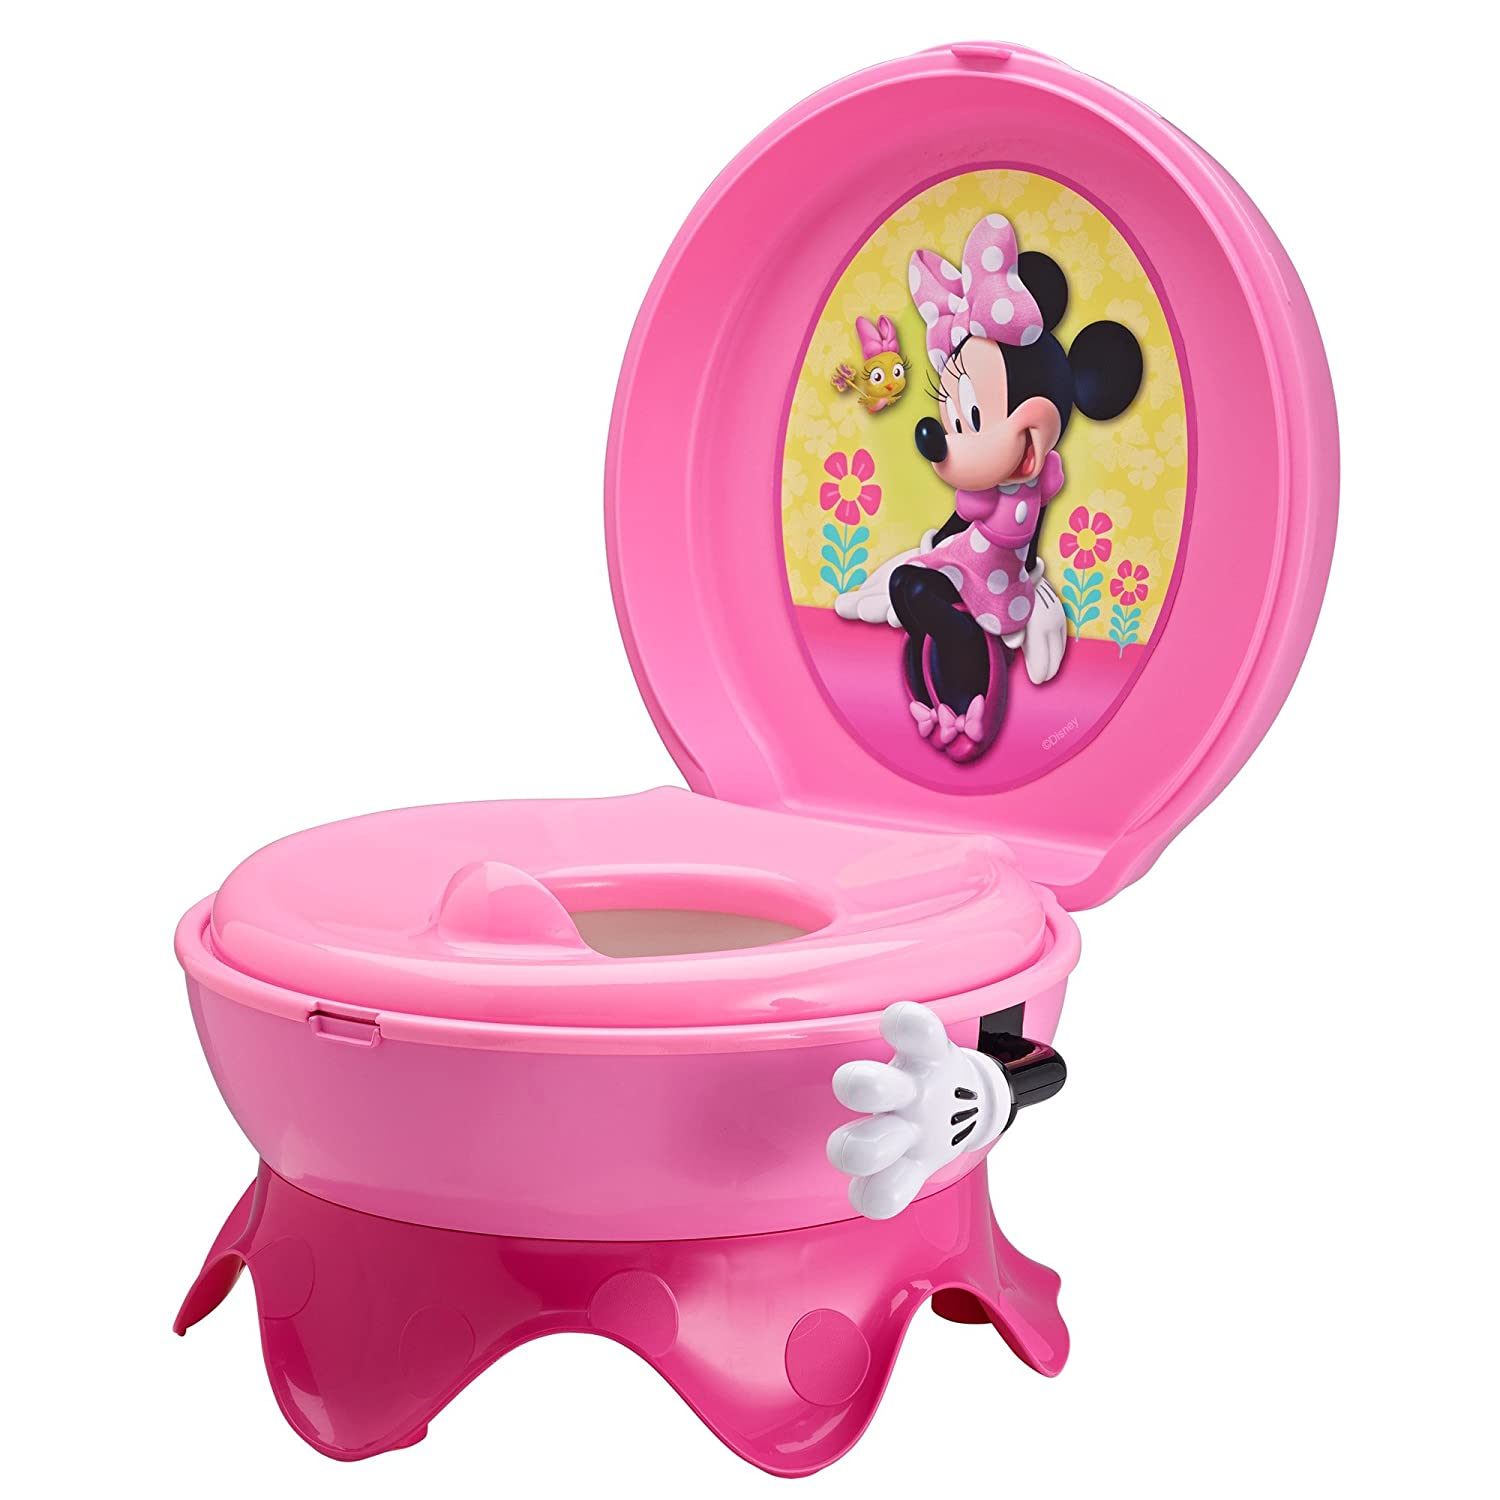 The First Years Disney Baby Mickey Mouse 3-In-1 Potty System, Graphics May Vary Y9909